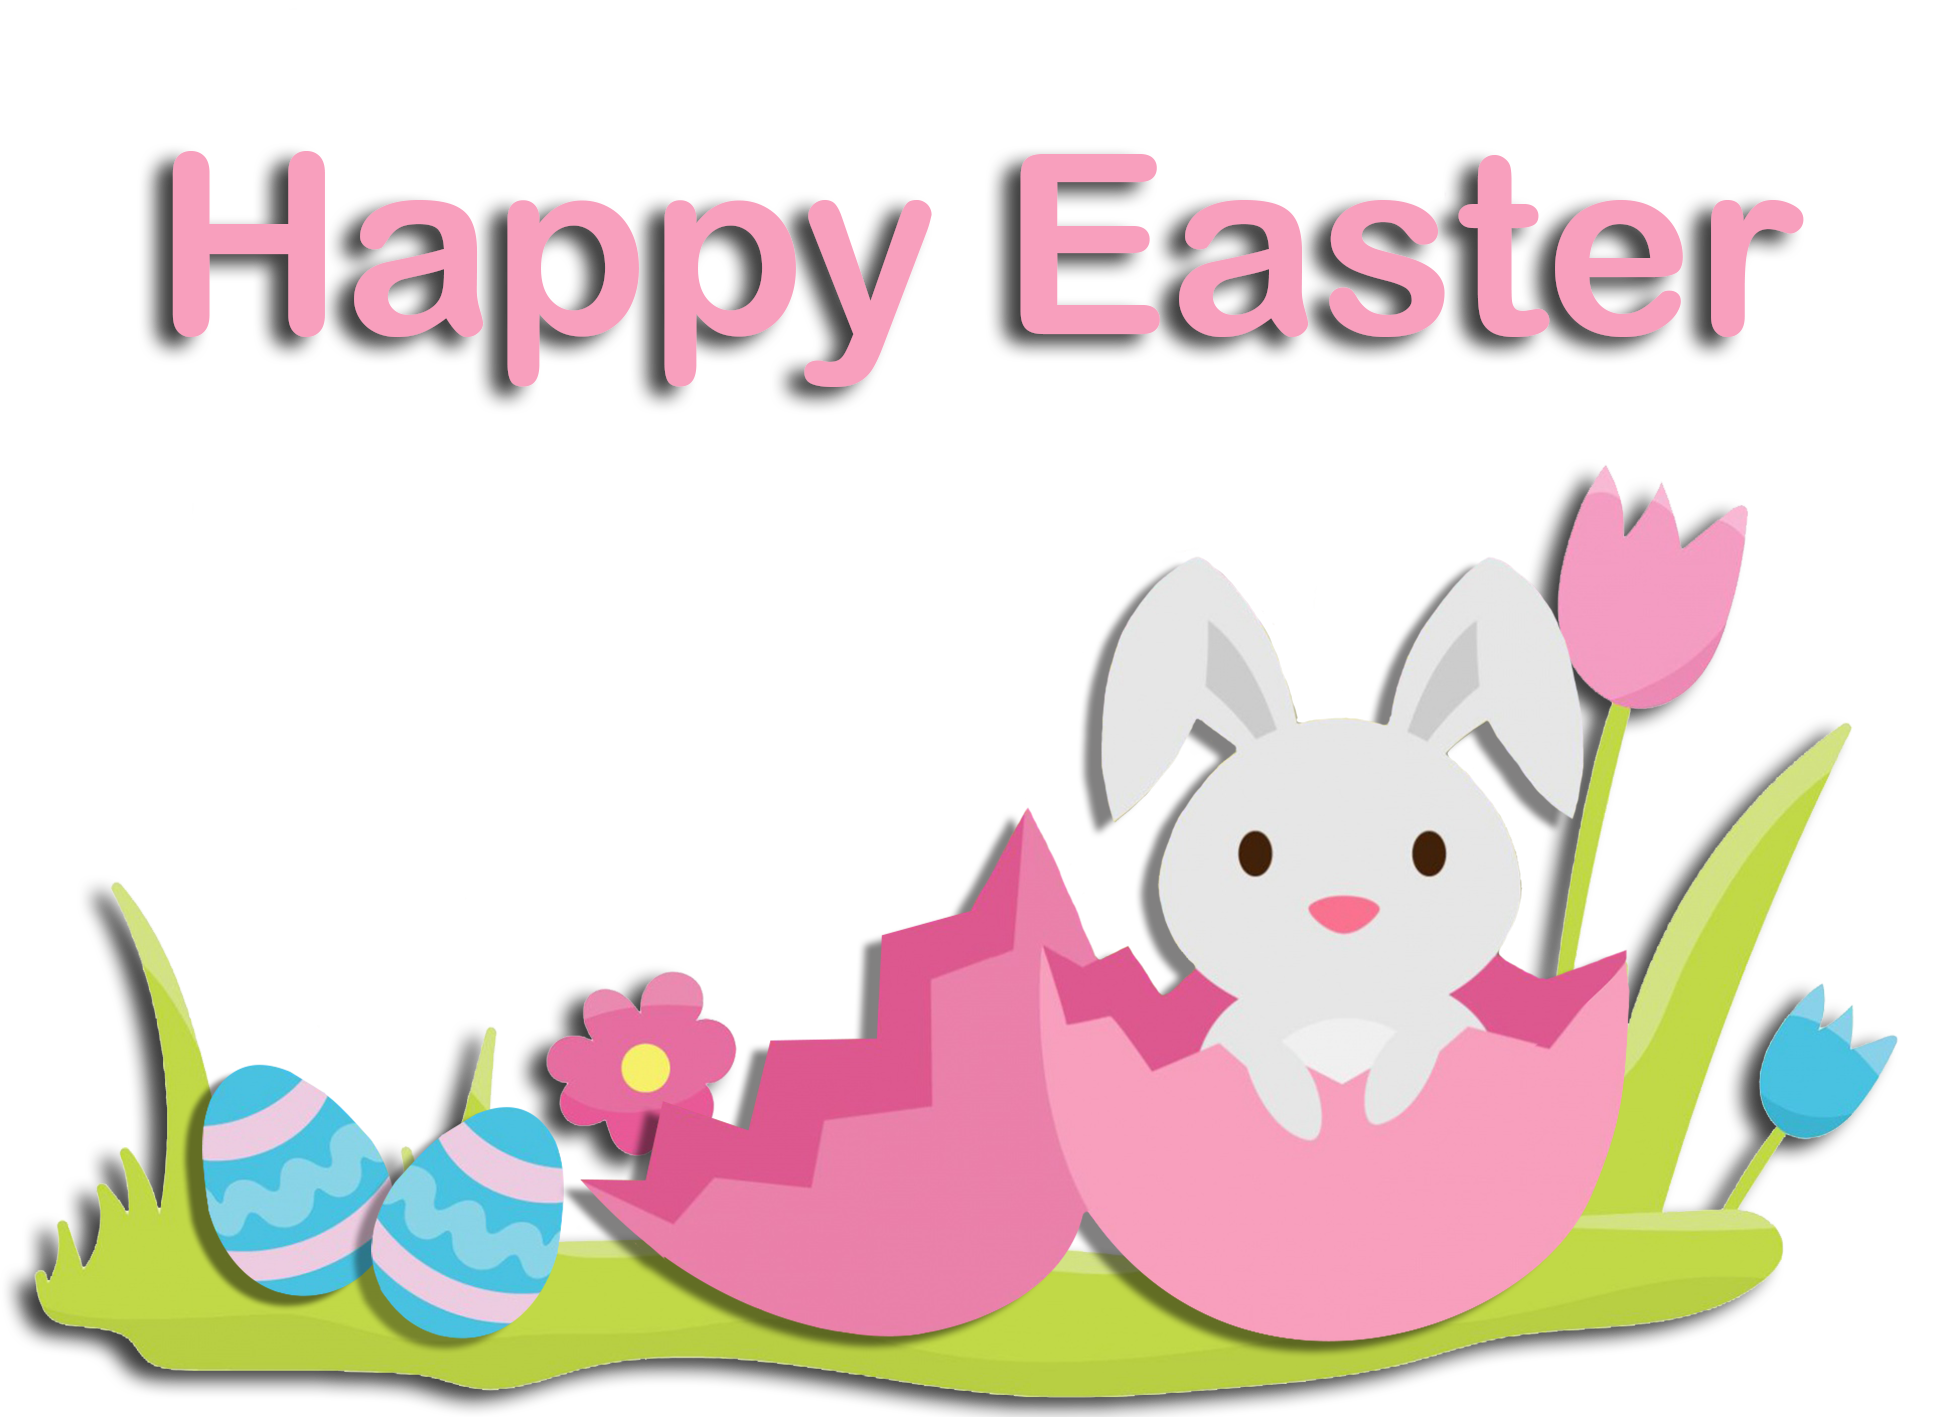 Happy Easter bunny in egg shell